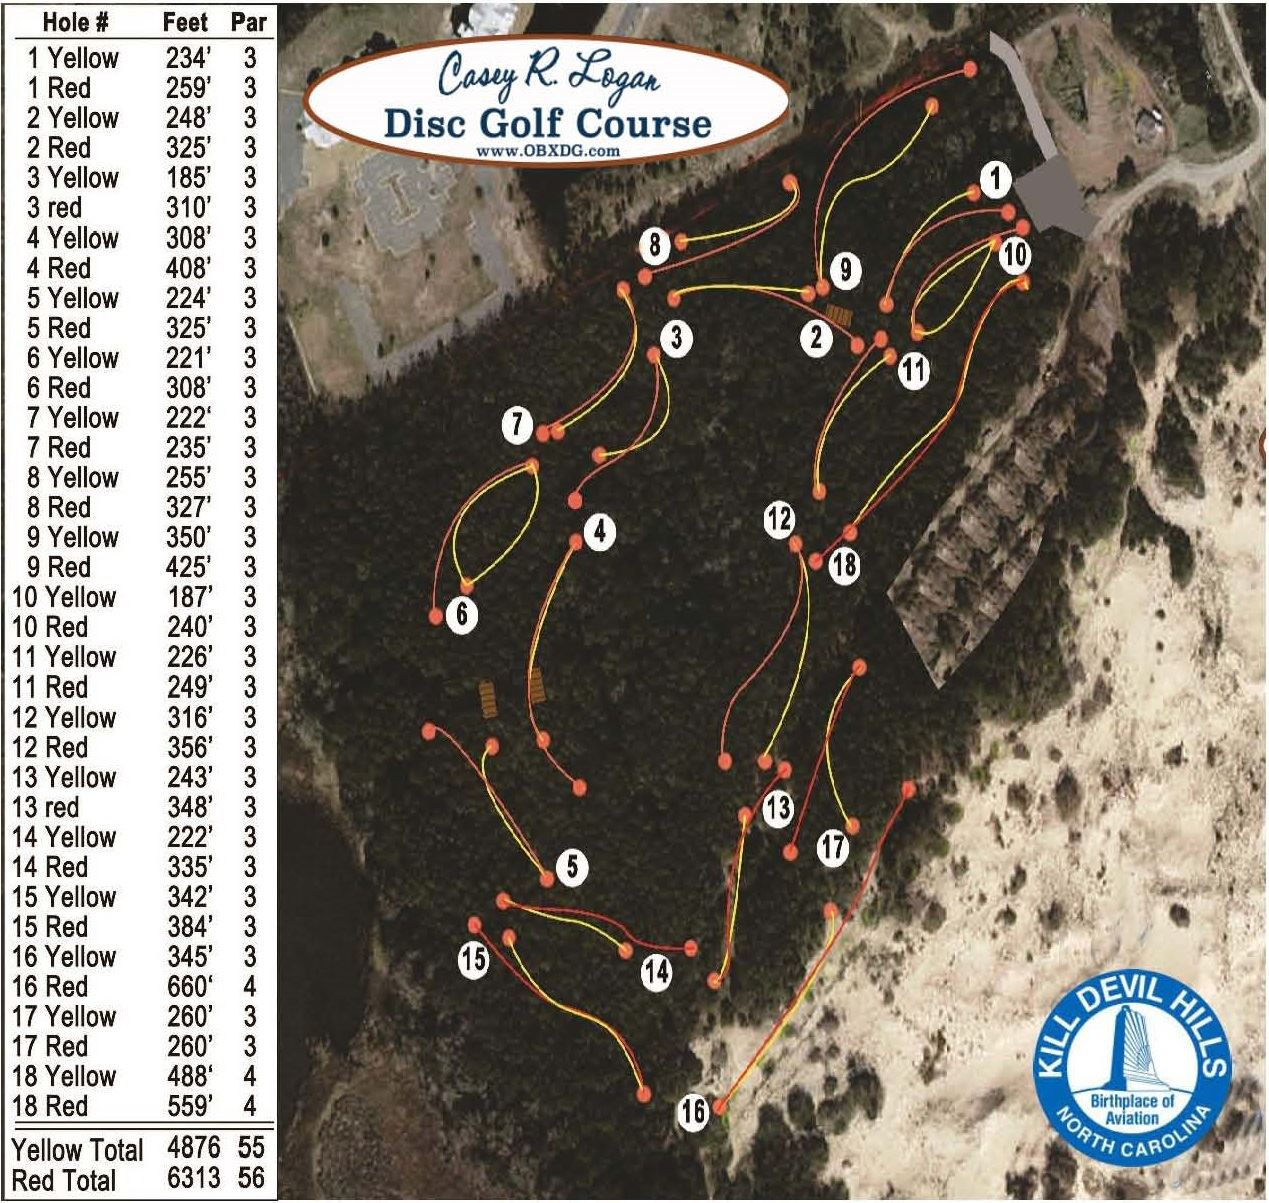 Disc Golf Course Map with Distances